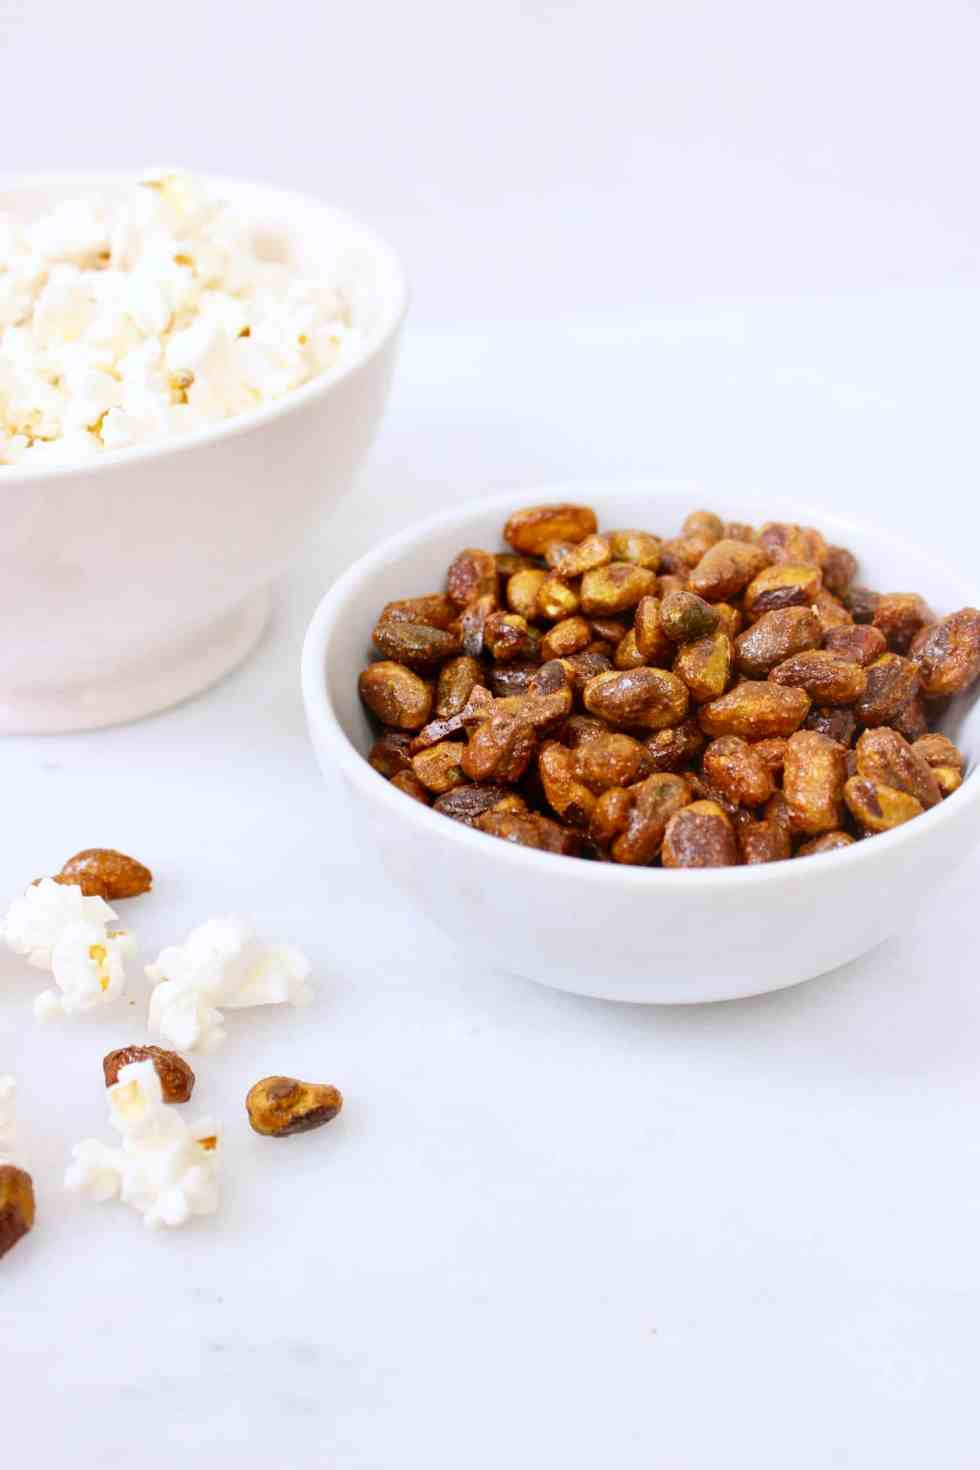 Candied nuts in white bowl against white background.